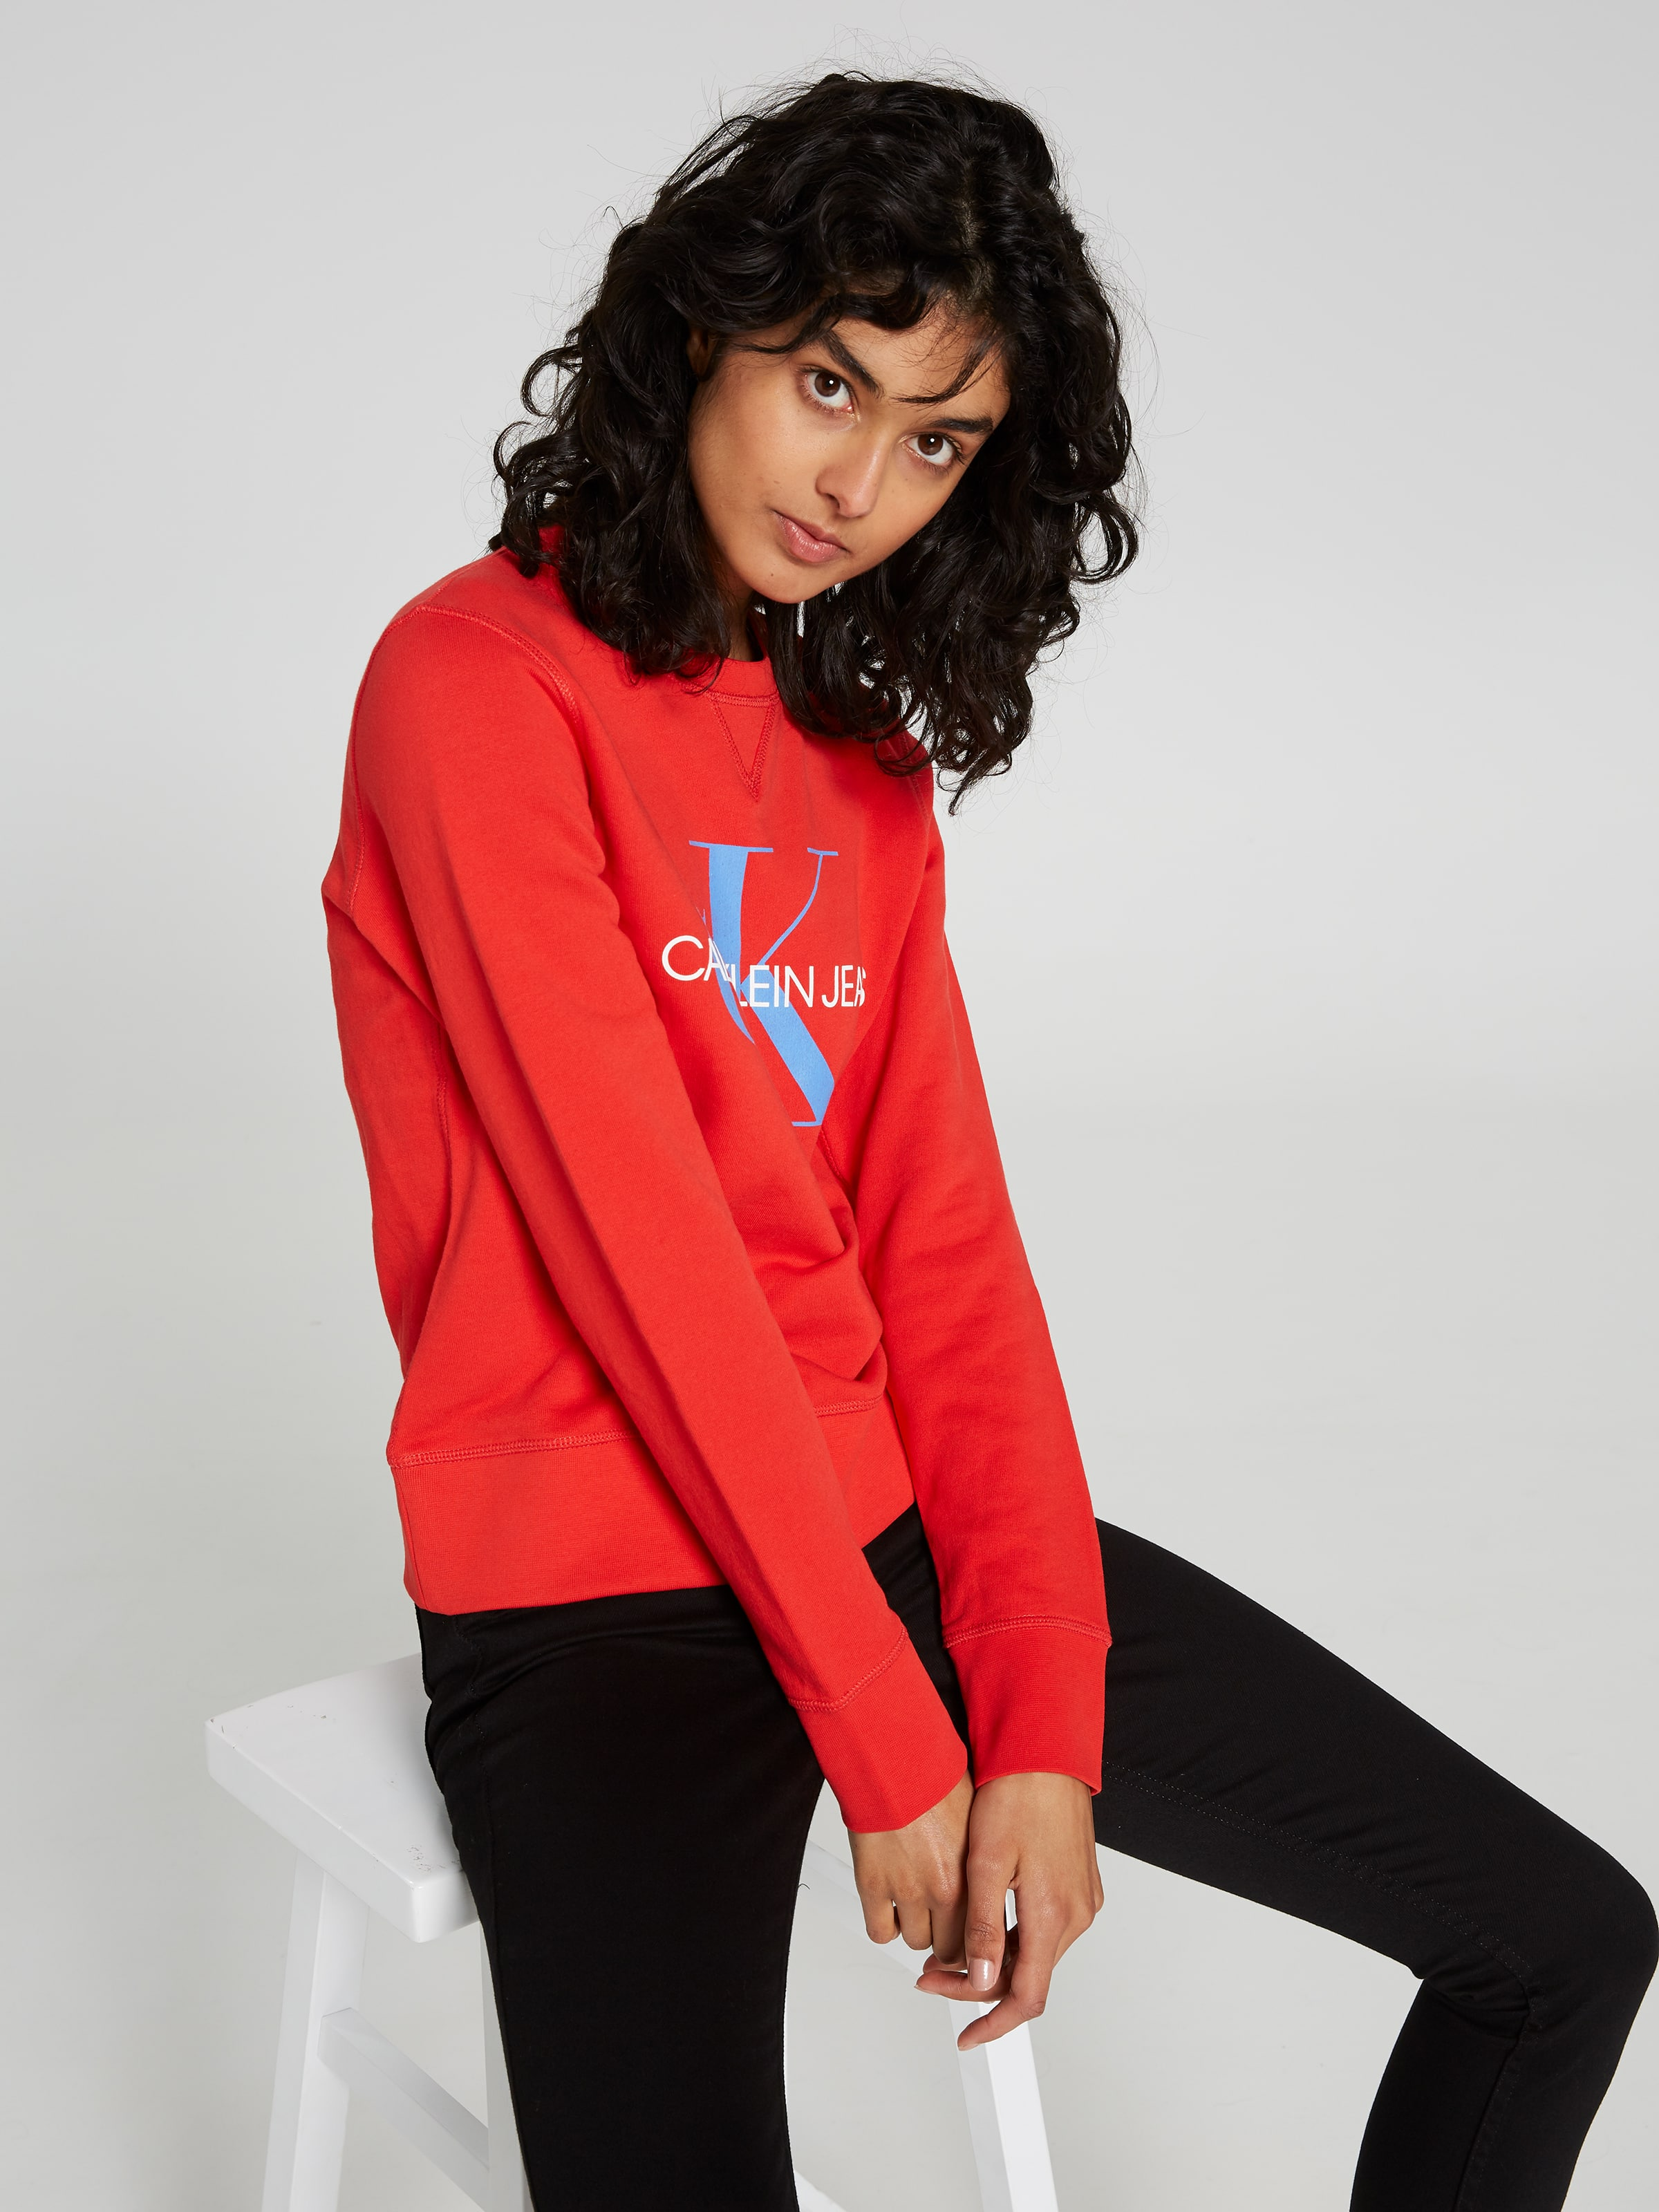 f5fbac75aad9 ... Image for Calvin Klein Monogram Logo Sweatshirt Red from Just Jeans ...